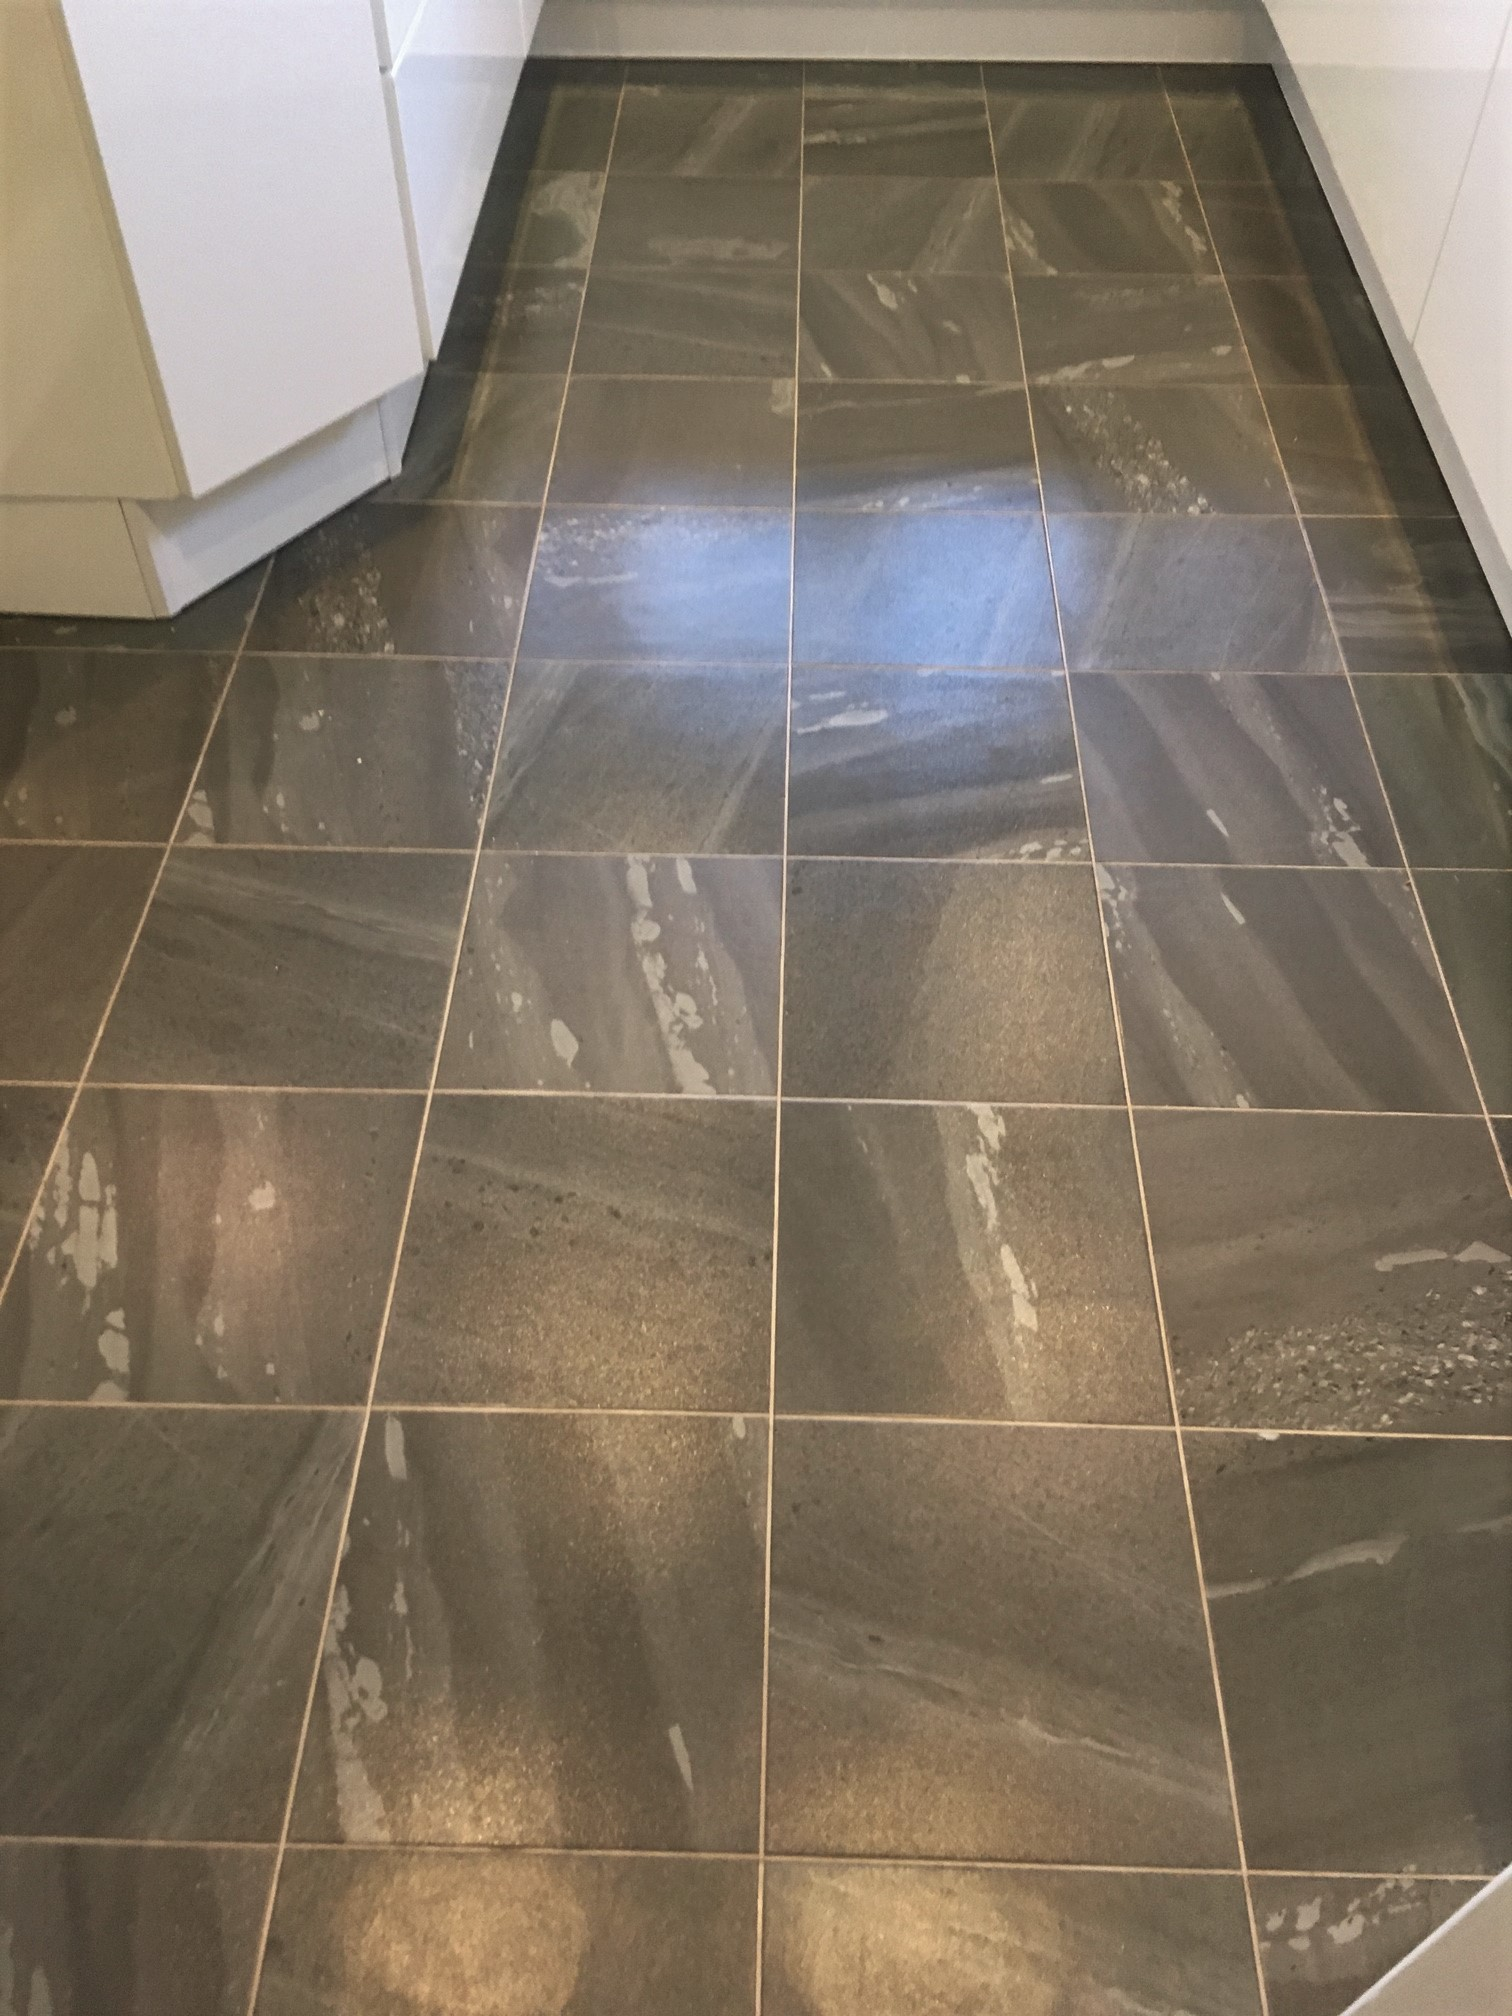 Amtico vinyl floor tiles cleaned and sealed in a heysham kitchen amtico vinyl floor tiles cleaned and sealed in a heysham kitchen tile doctor lancashire doublecrazyfo Images